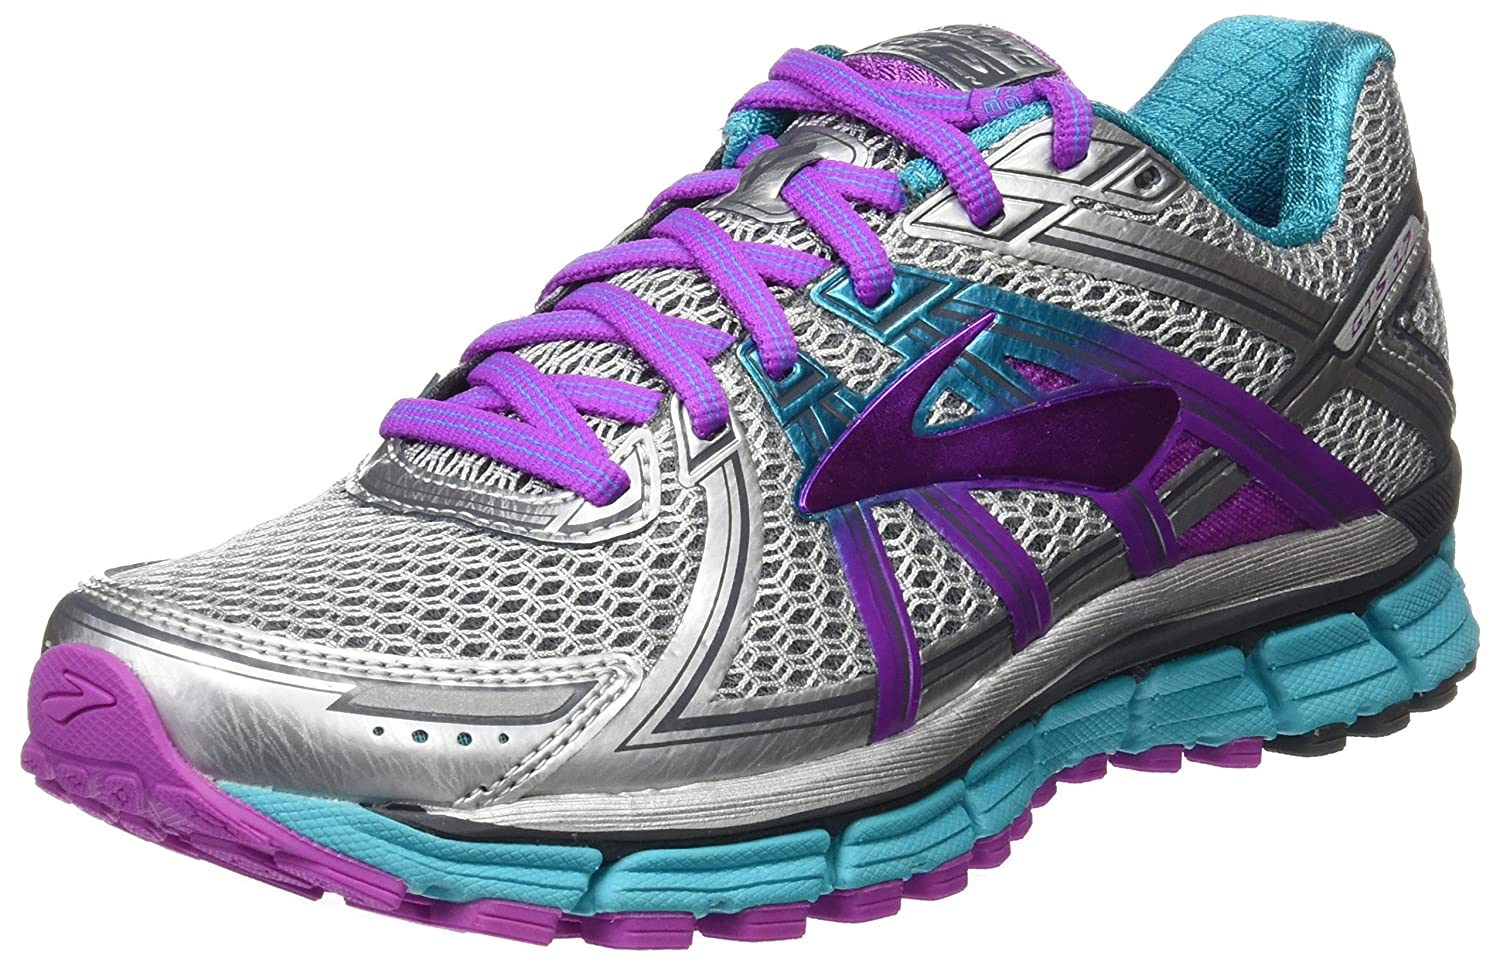 Brooks Women's Adrenaline GTS 17 B01GEU1CGA 6 B(M) US|Silver/Purple Cactus Flower/Bluebird